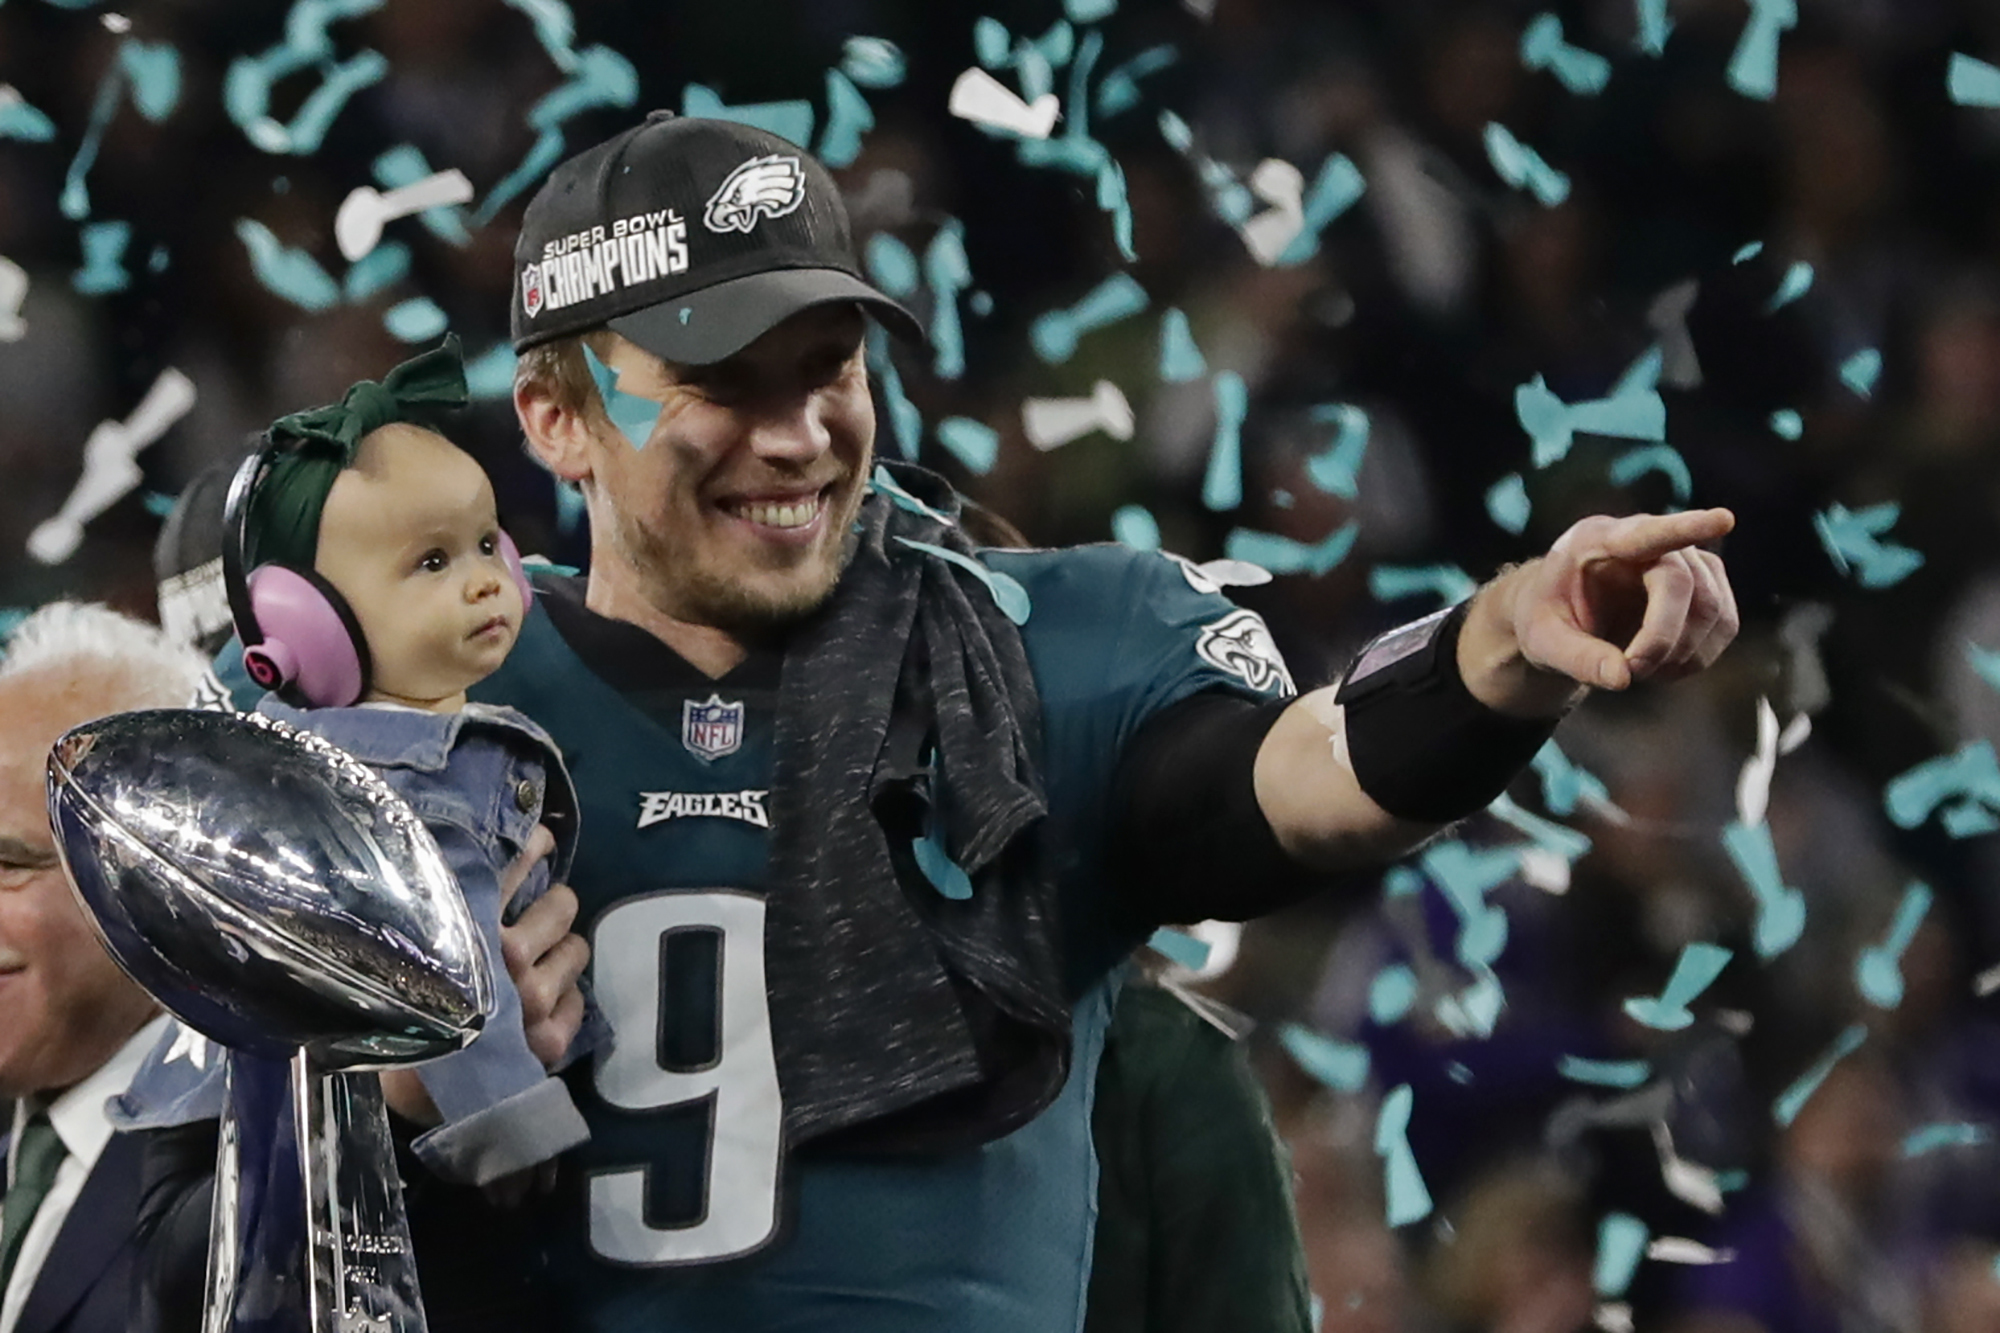 <div class='meta'><div class='origin-logo' data-origin='AP'></div><span class='caption-text' data-credit='AP Photo/Frank Franklin II'>Philadelphia Eagles quarterback Nick Foles (9) holds his daughter, Lily James, after winning the NFL Super Bowl 52 football game.</span></div>